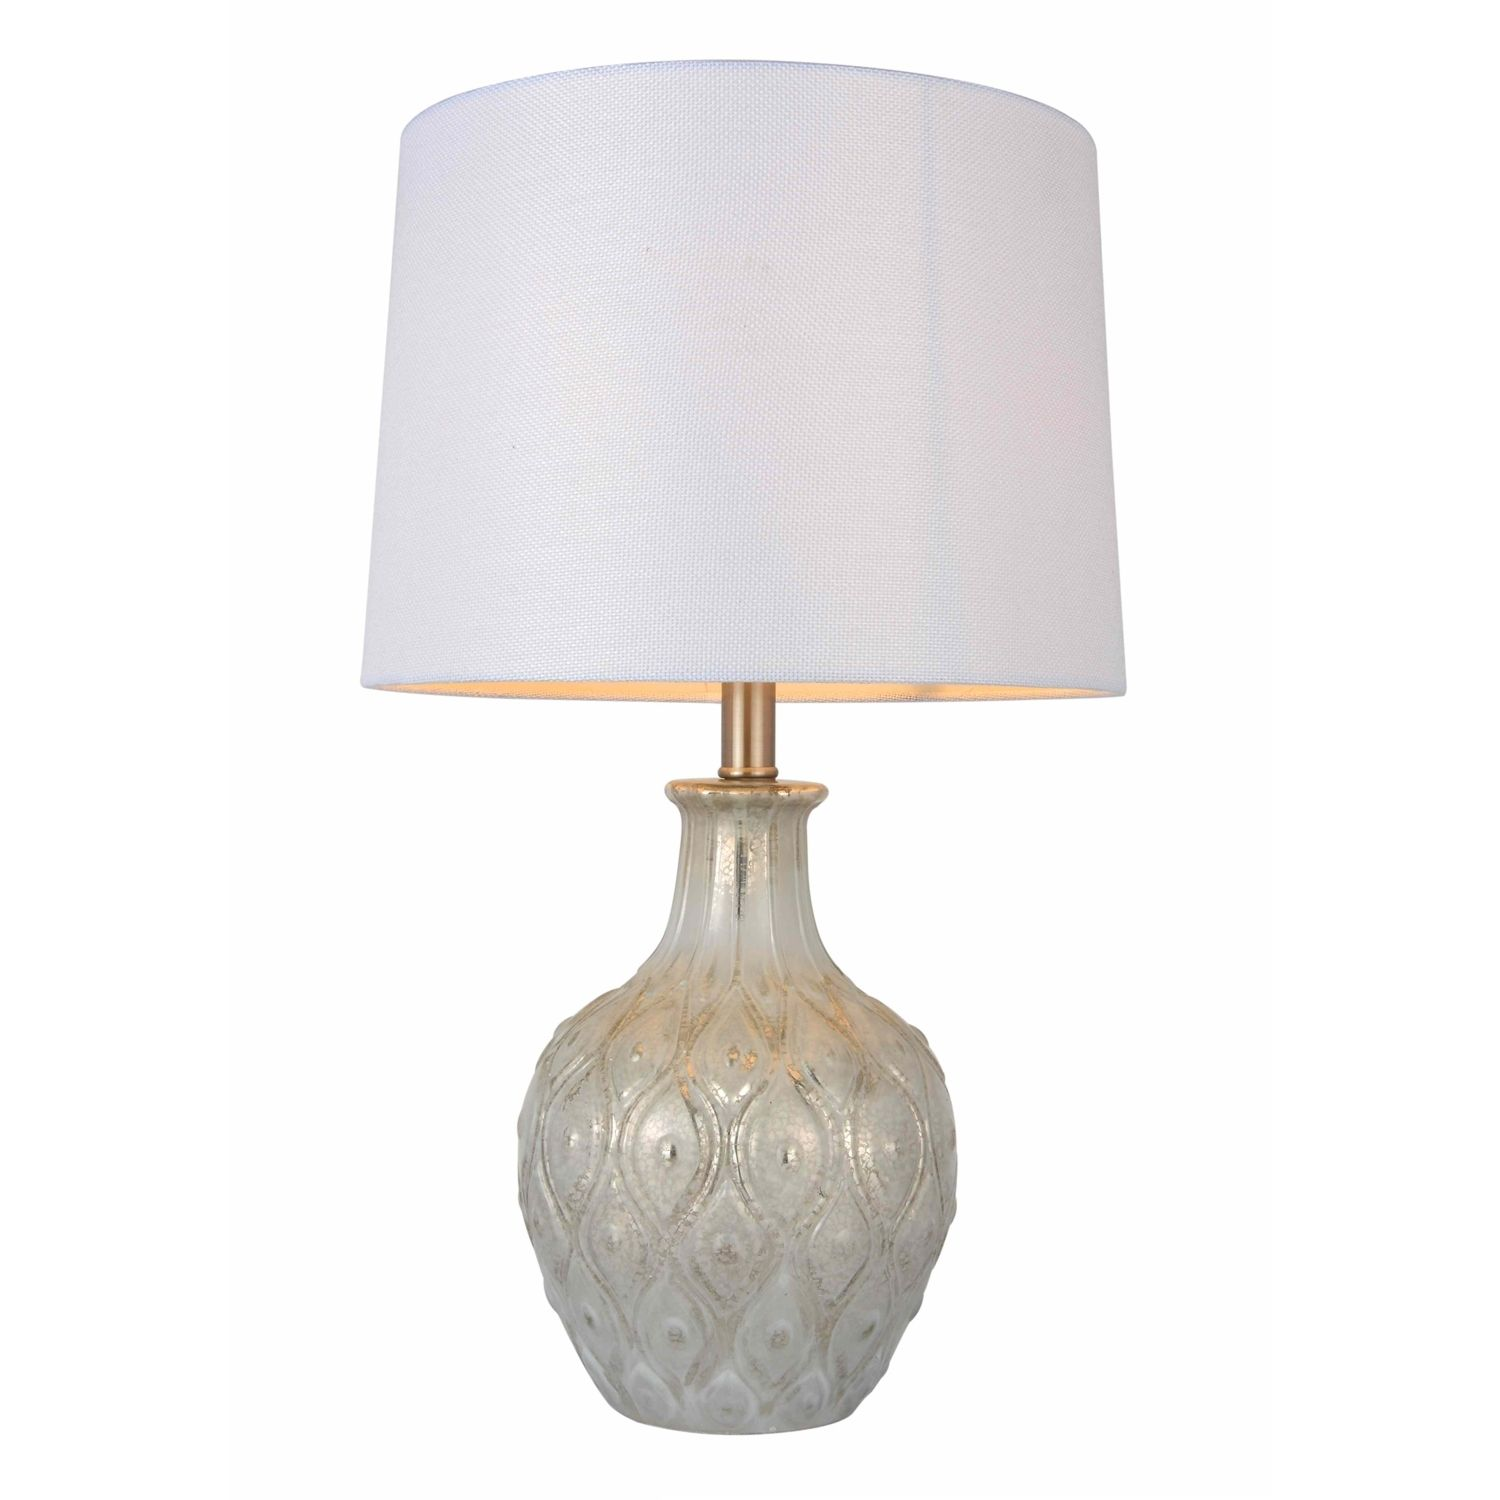 Oozing With Refined Elegance This Adella Glass Table Lamp Has An Ornately Decorated Body With Embossed White Lamp Shade Table Lamp Glass Table Lamp